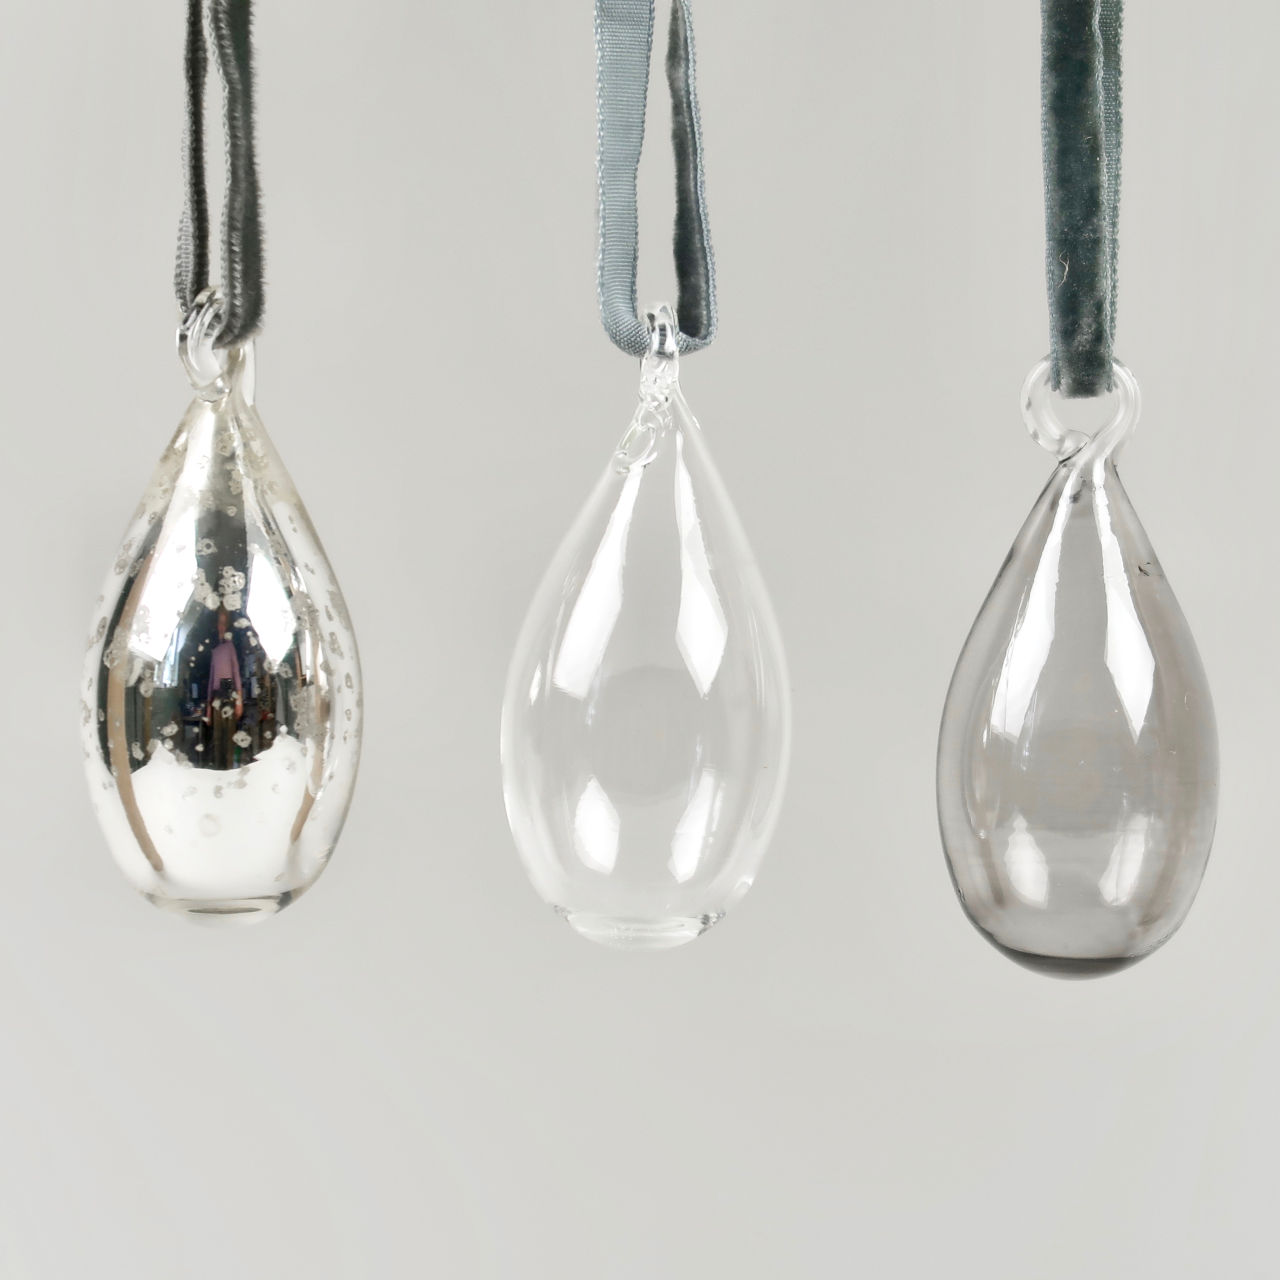 Tikari Glass Baubles - Set of 3 - Small